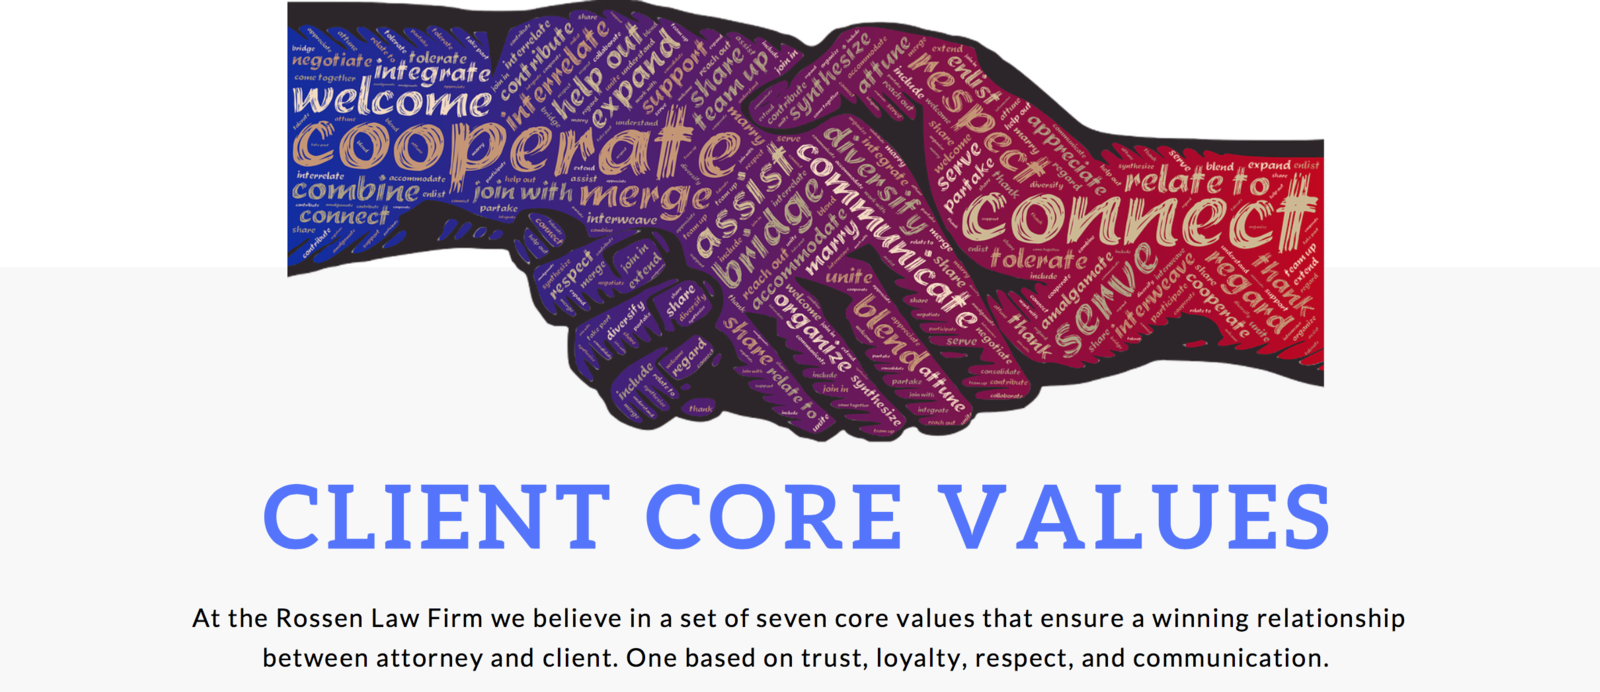 a photo explains the Core Values that Rossen Law Firm has when dealing with clients with criminal, DUI, federal or domestic violence cases